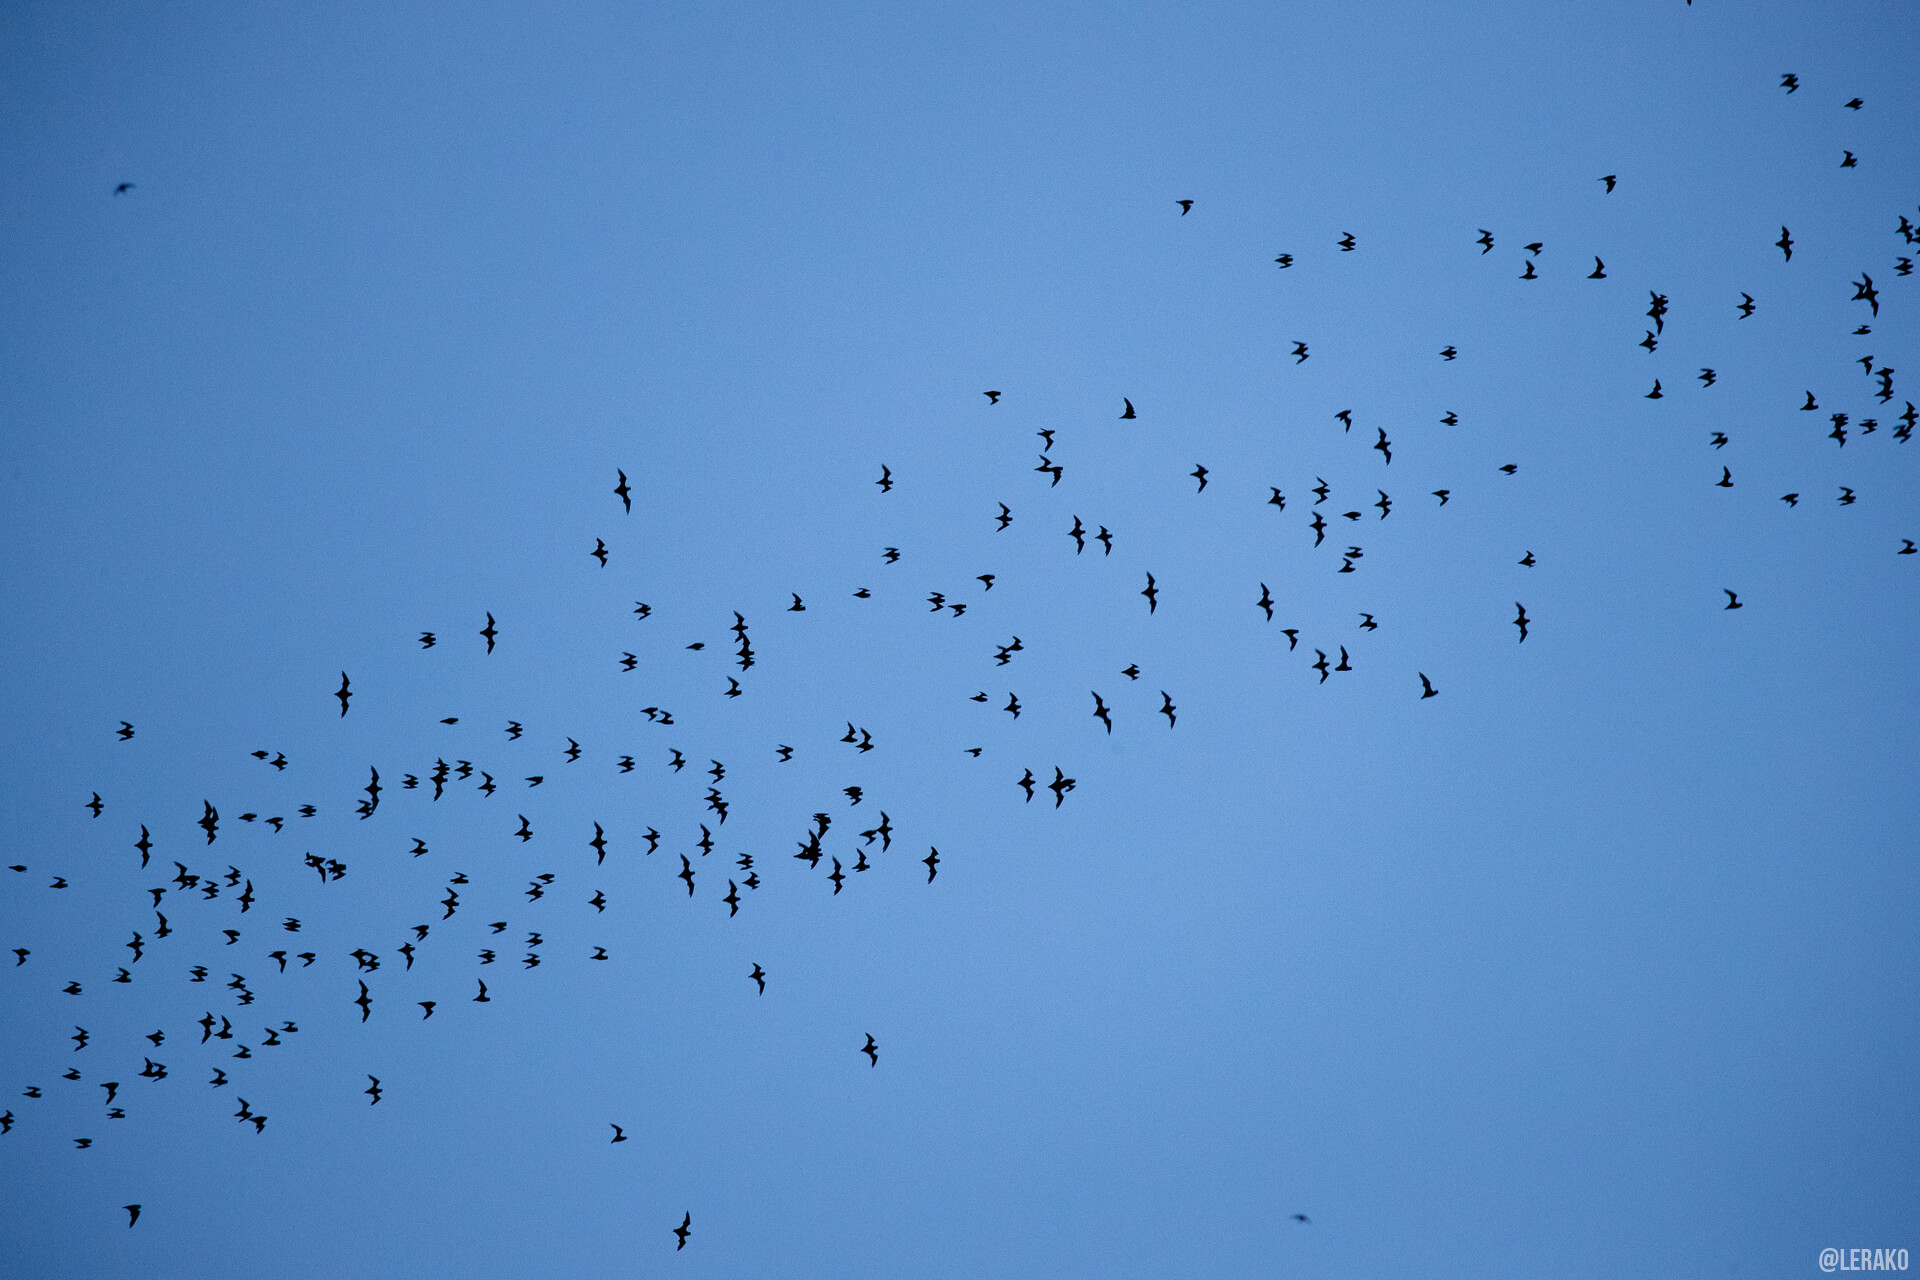 a flock of birds flying in the blue sky